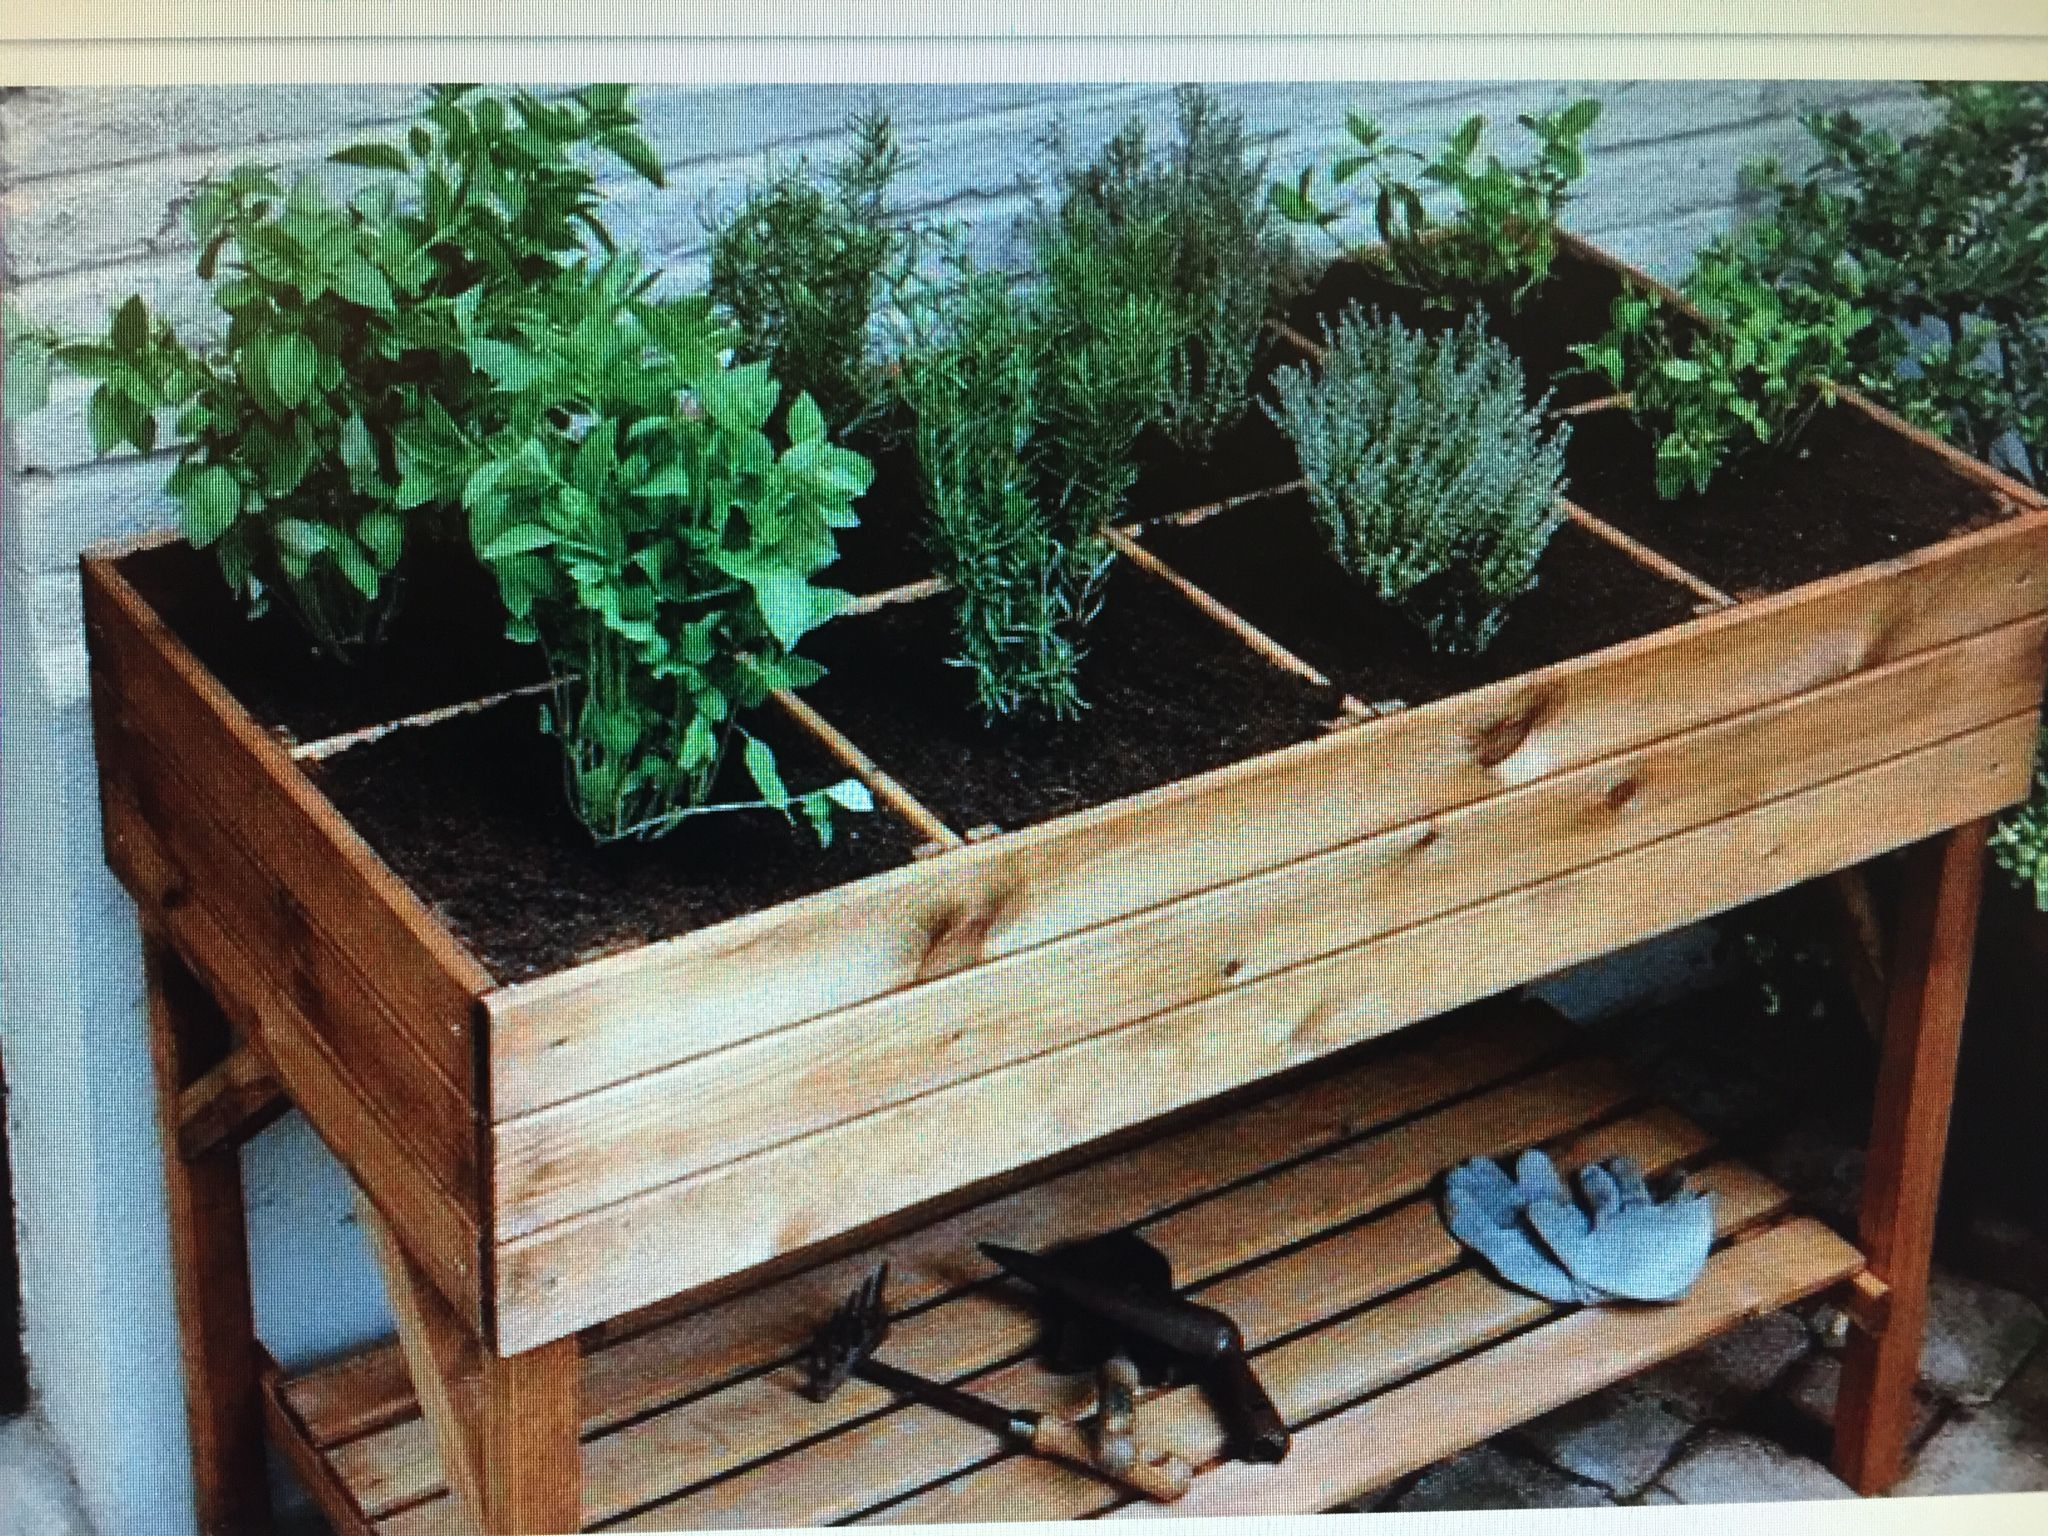 For balcony garden - simple & roomy!